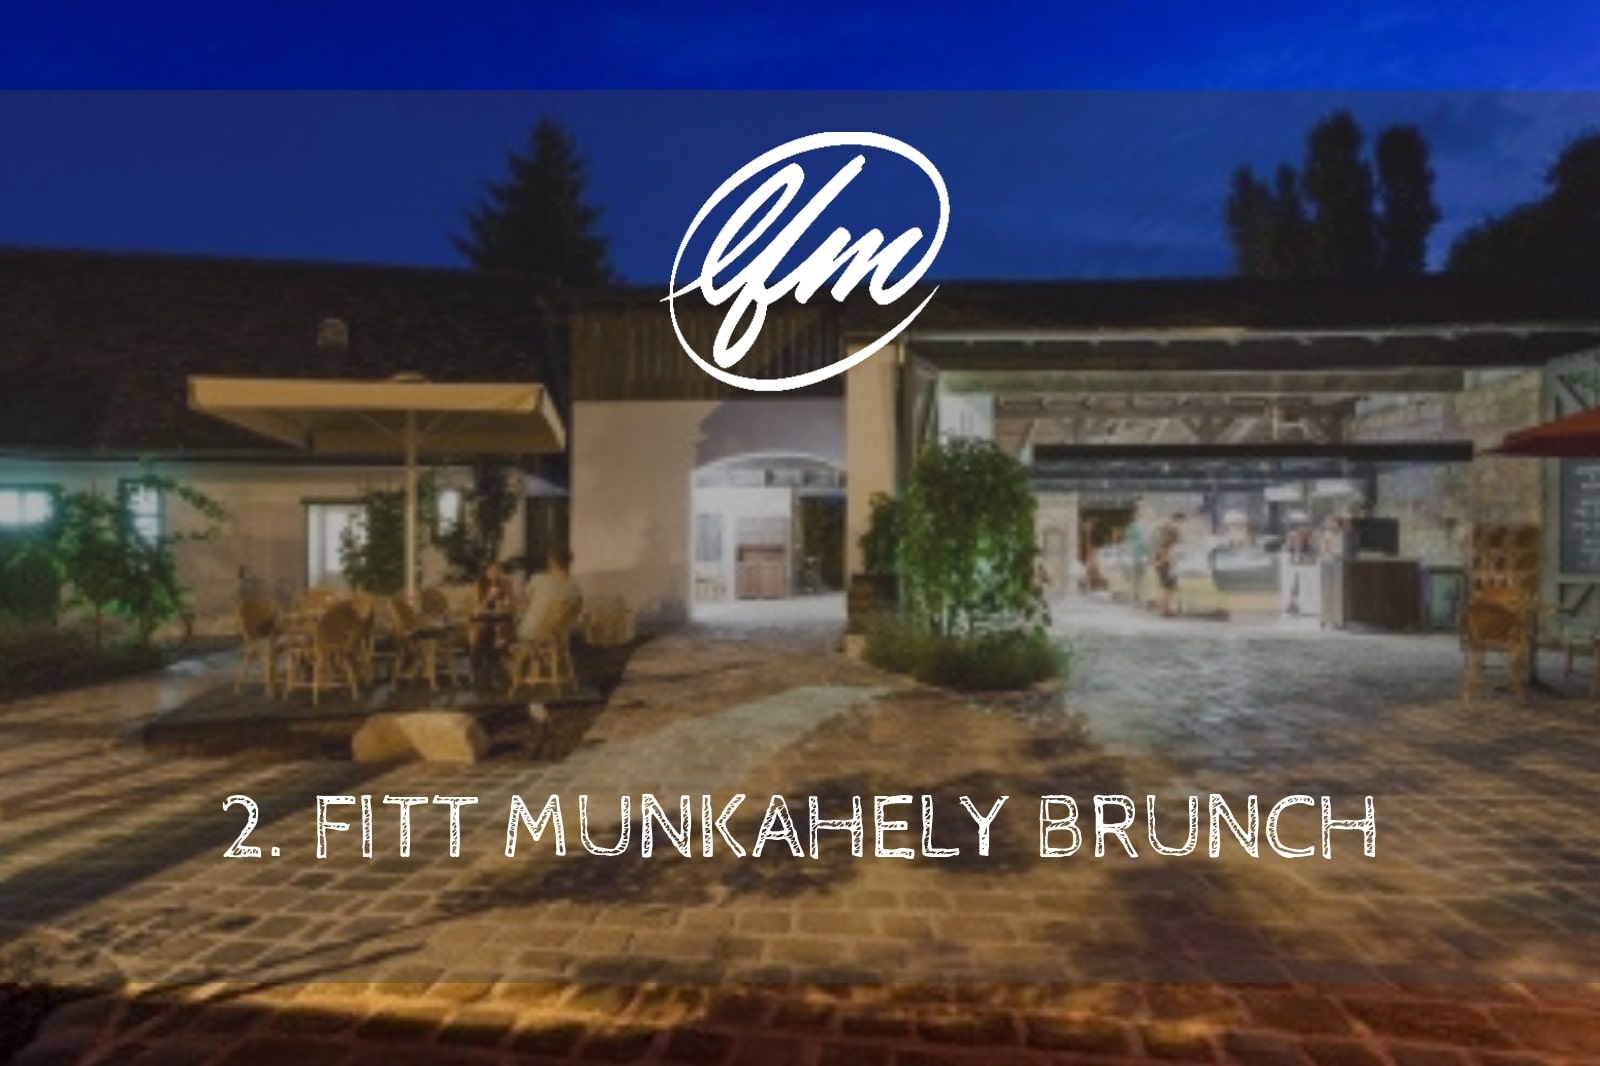 2. Fitt Munkahely Brunch november 29. 16.00